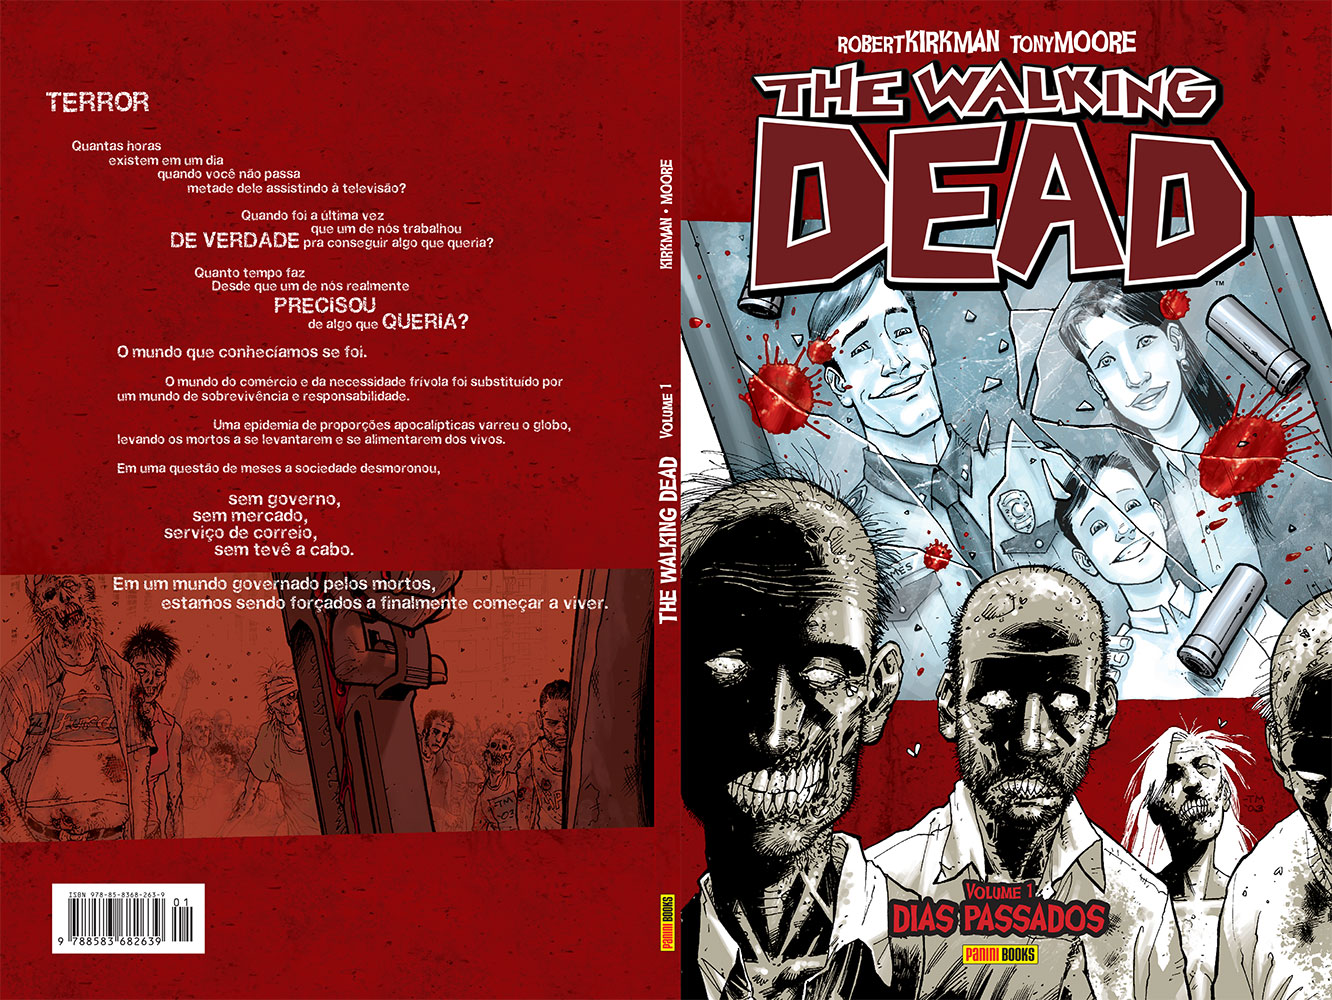 The Walking Dead - Volume 1 - Dias Passados